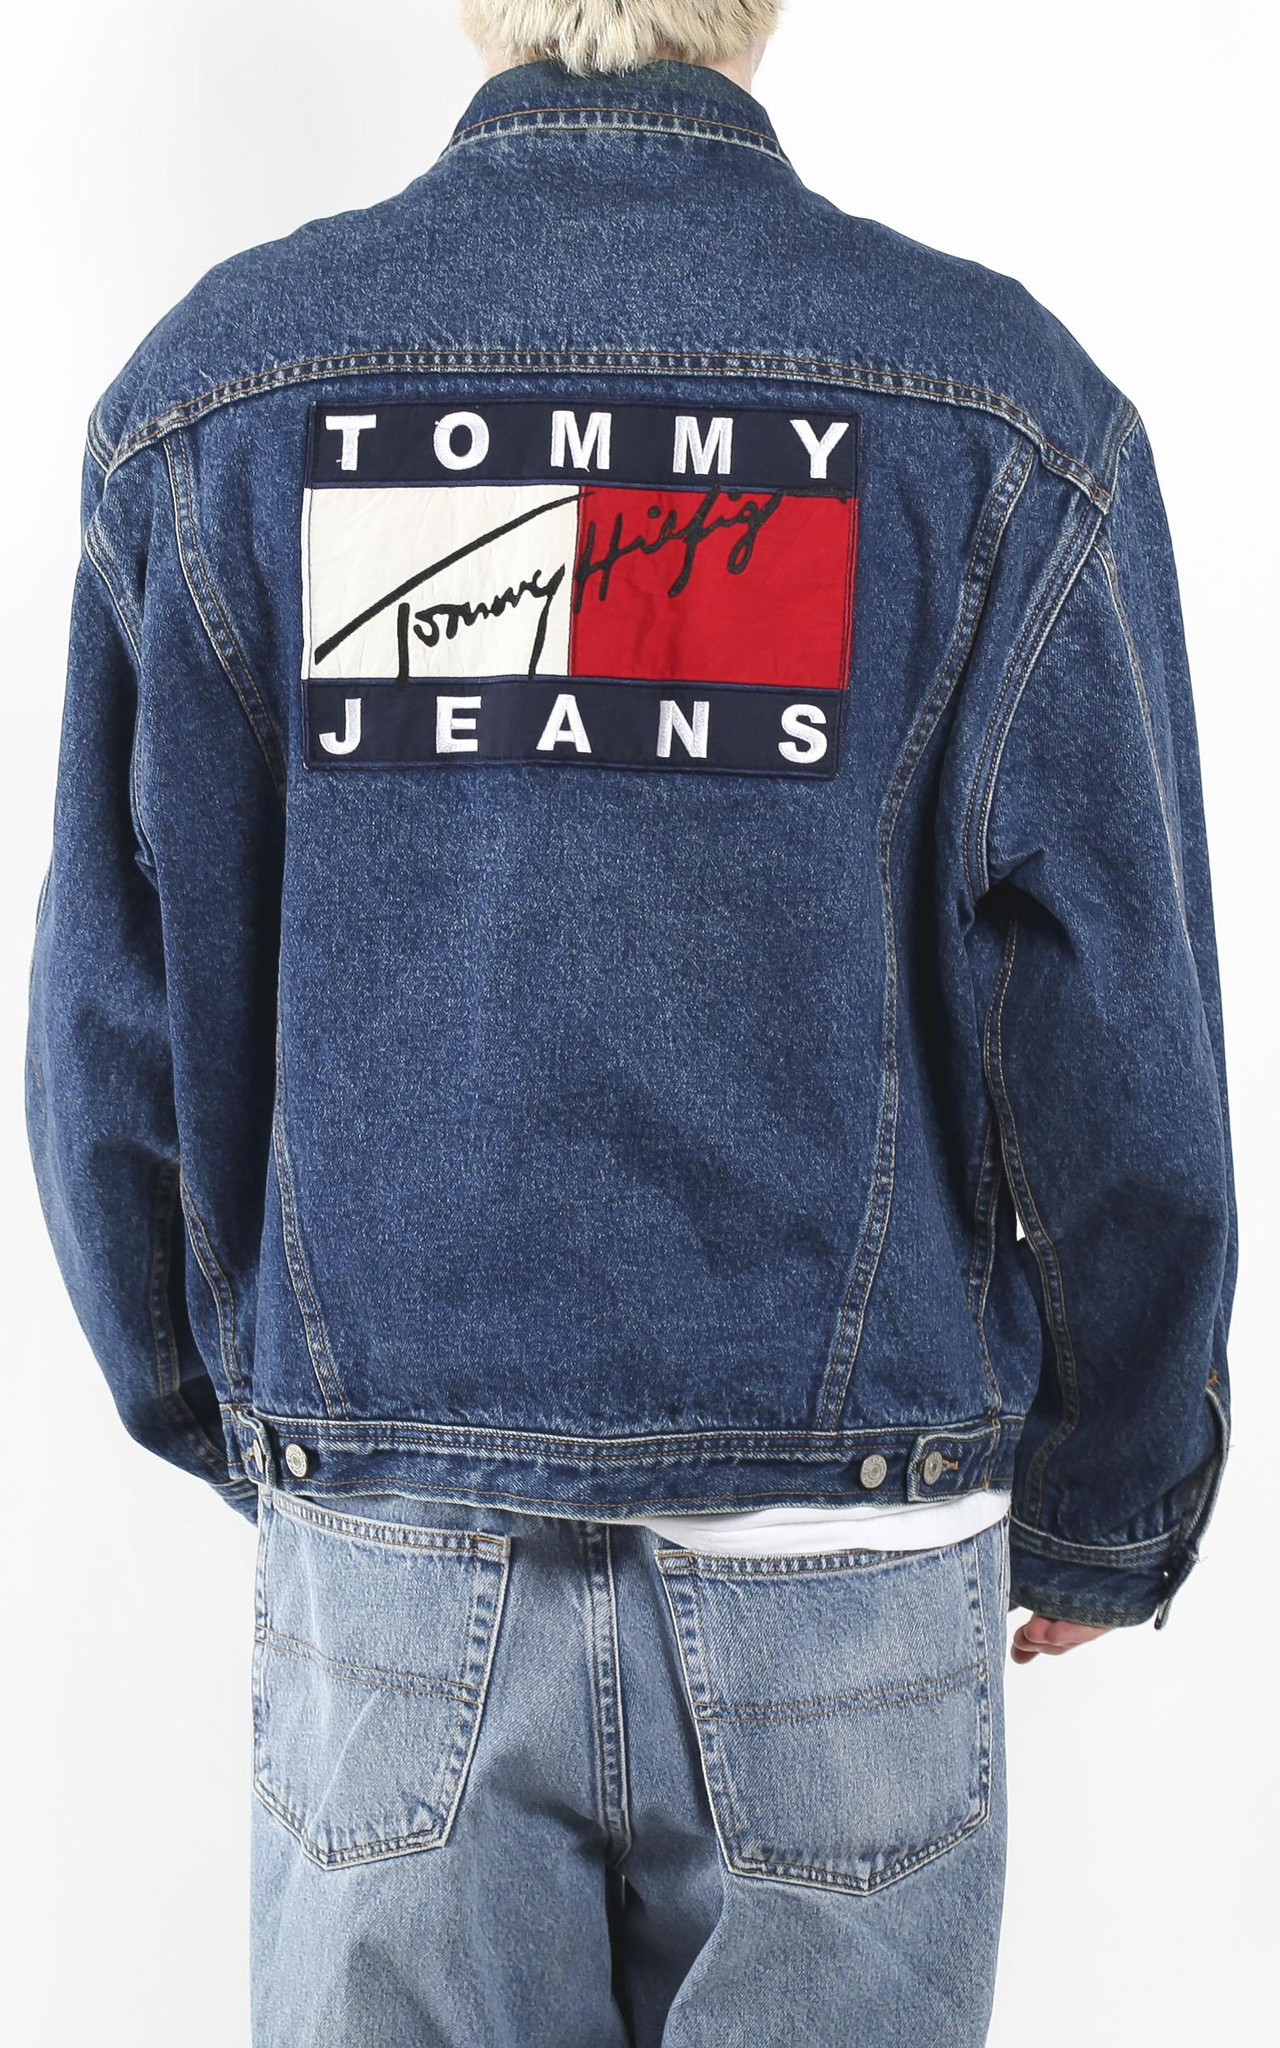 Vintage Tommy Hilfiger Denim Jacket Sz L – F As In Frank Vintage